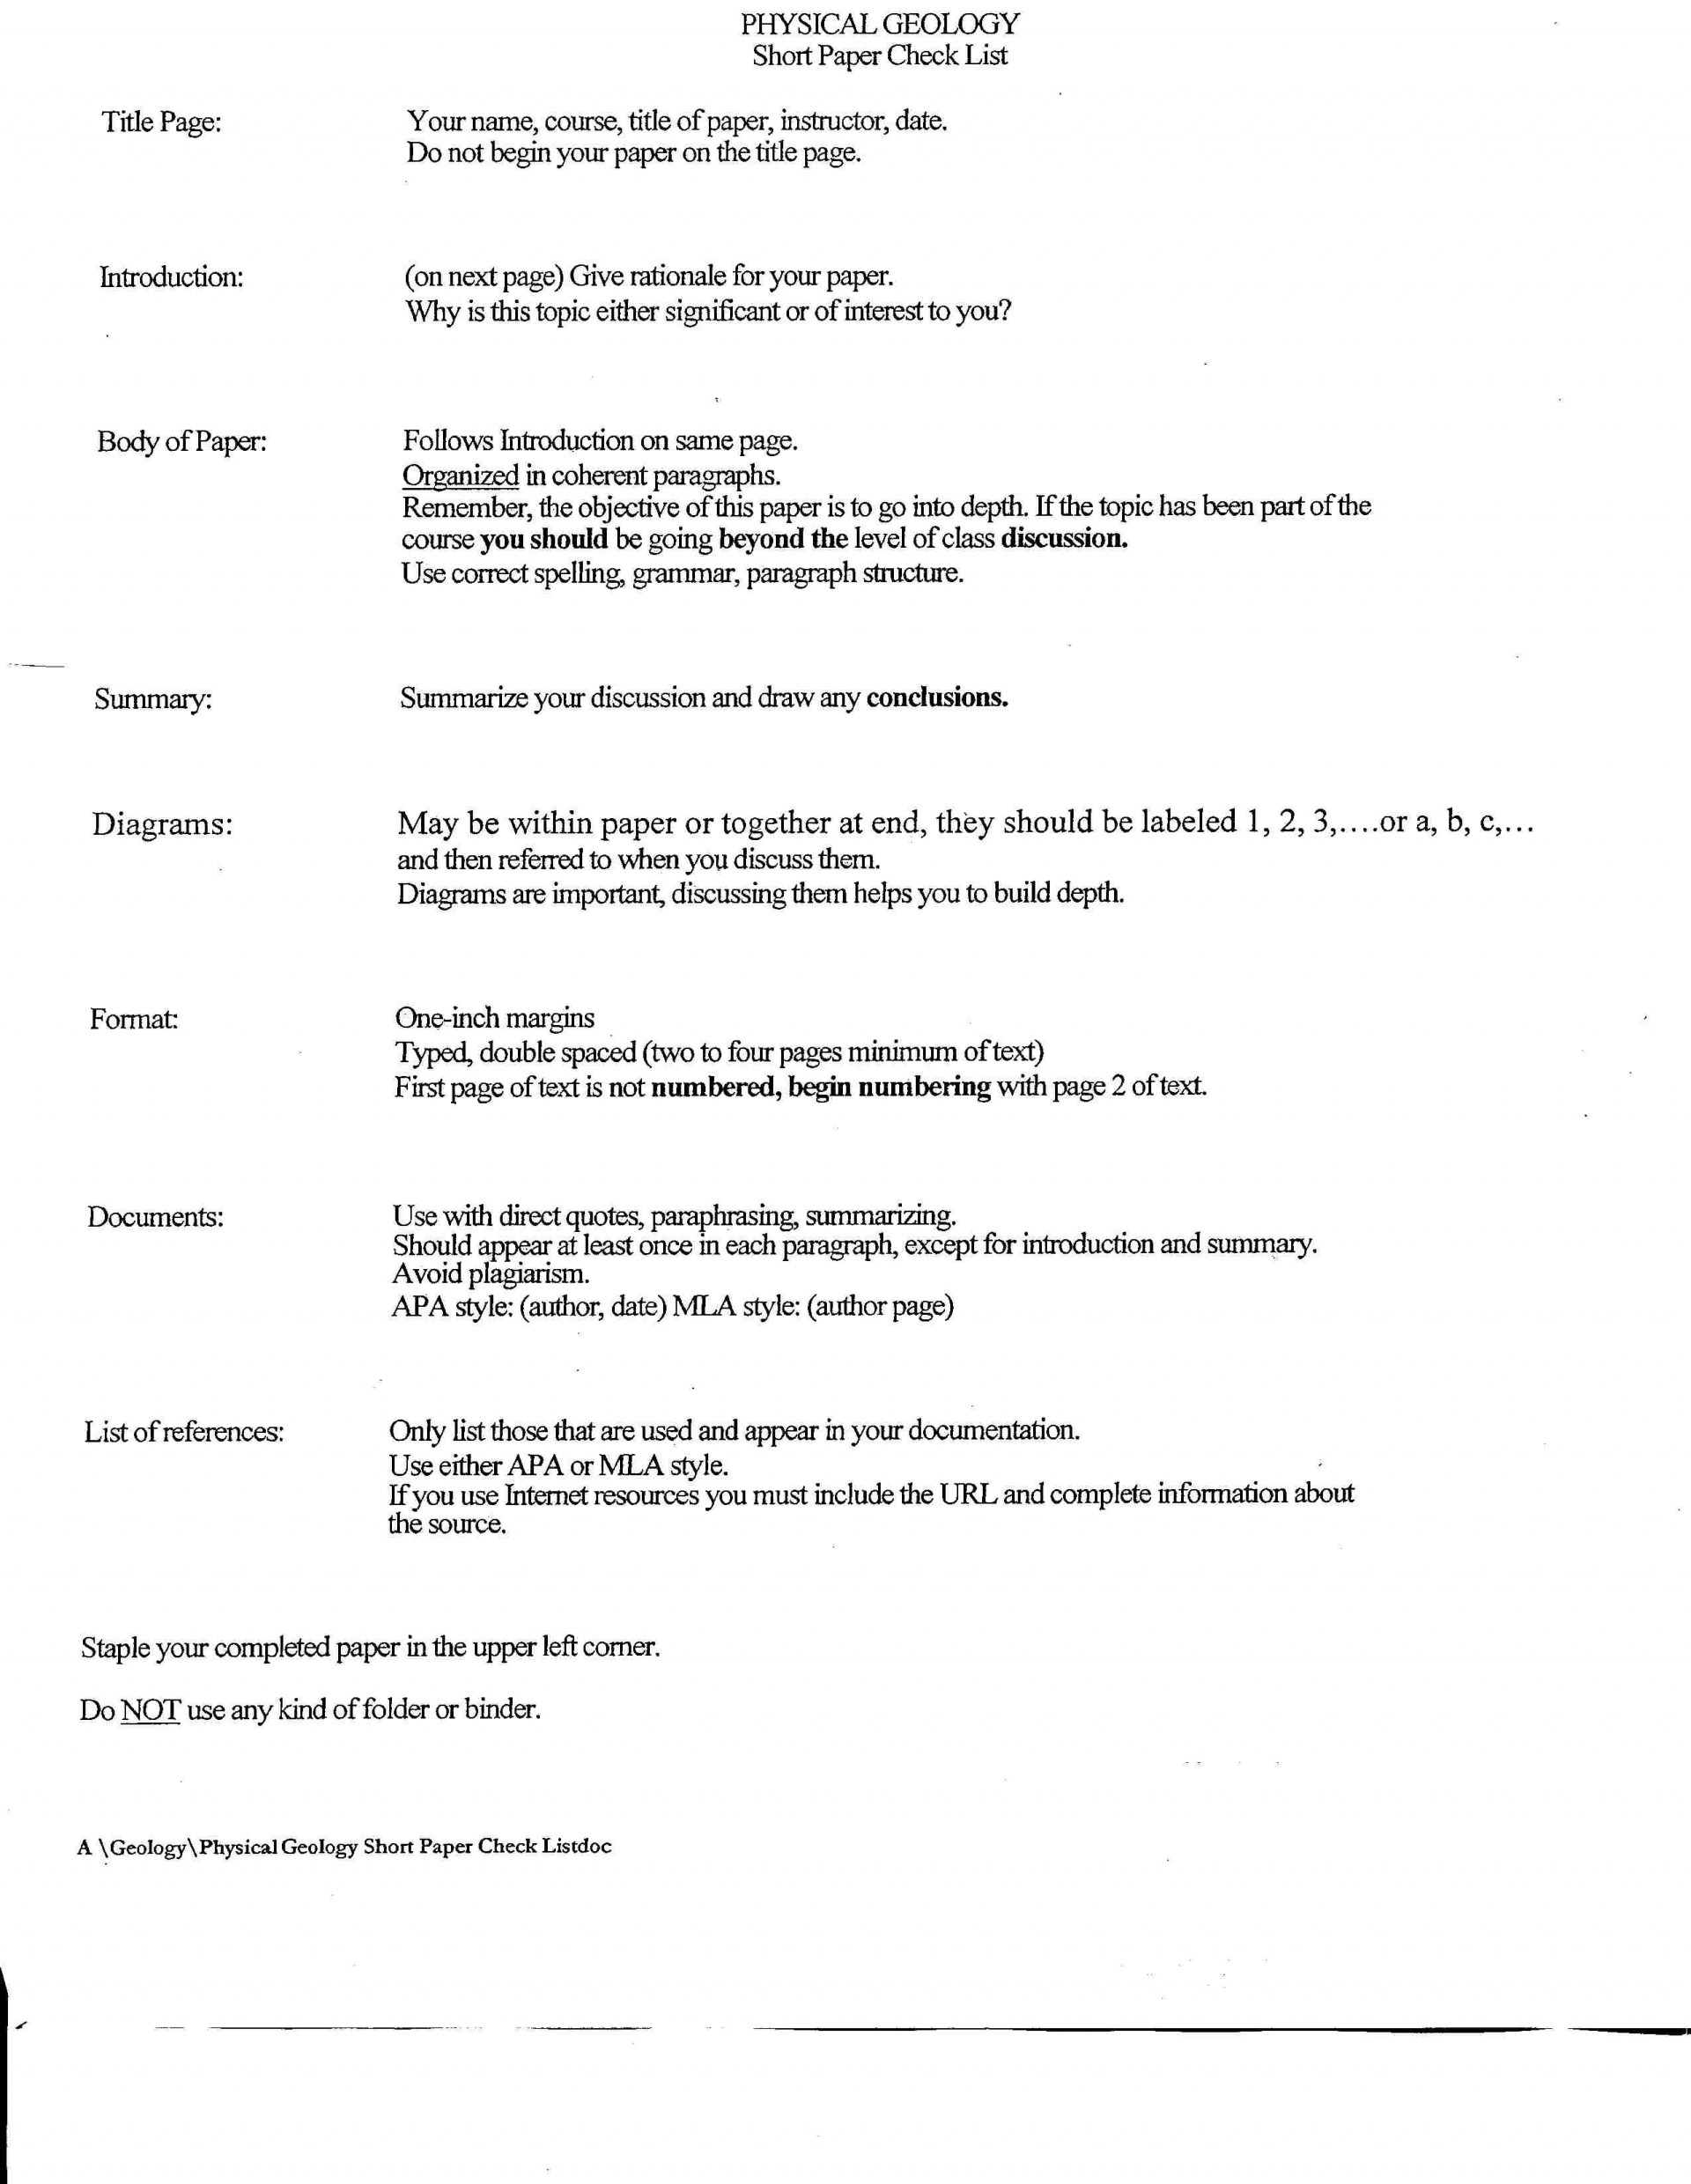 021 Short Paper Checklist Research Essay Dreaded Example Apa Papers Pdf Format 6th Edition 1920